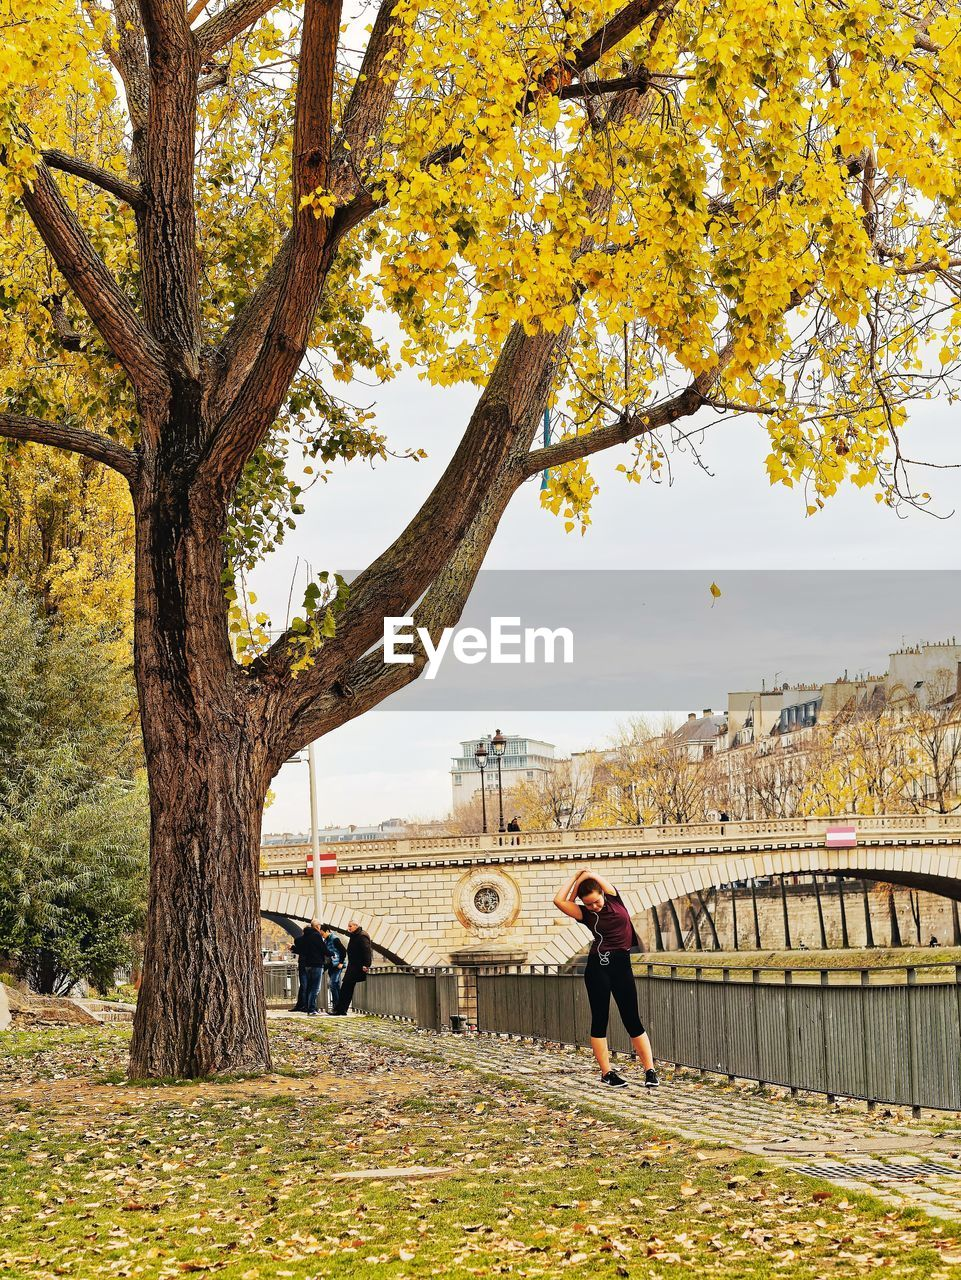 tree, plant, real people, autumn, lifestyles, nature, leisure activity, architecture, women, adult, built structure, full length, change, trunk, day, tree trunk, people, men, branch, plant part, outdoors, bridge - man made structure